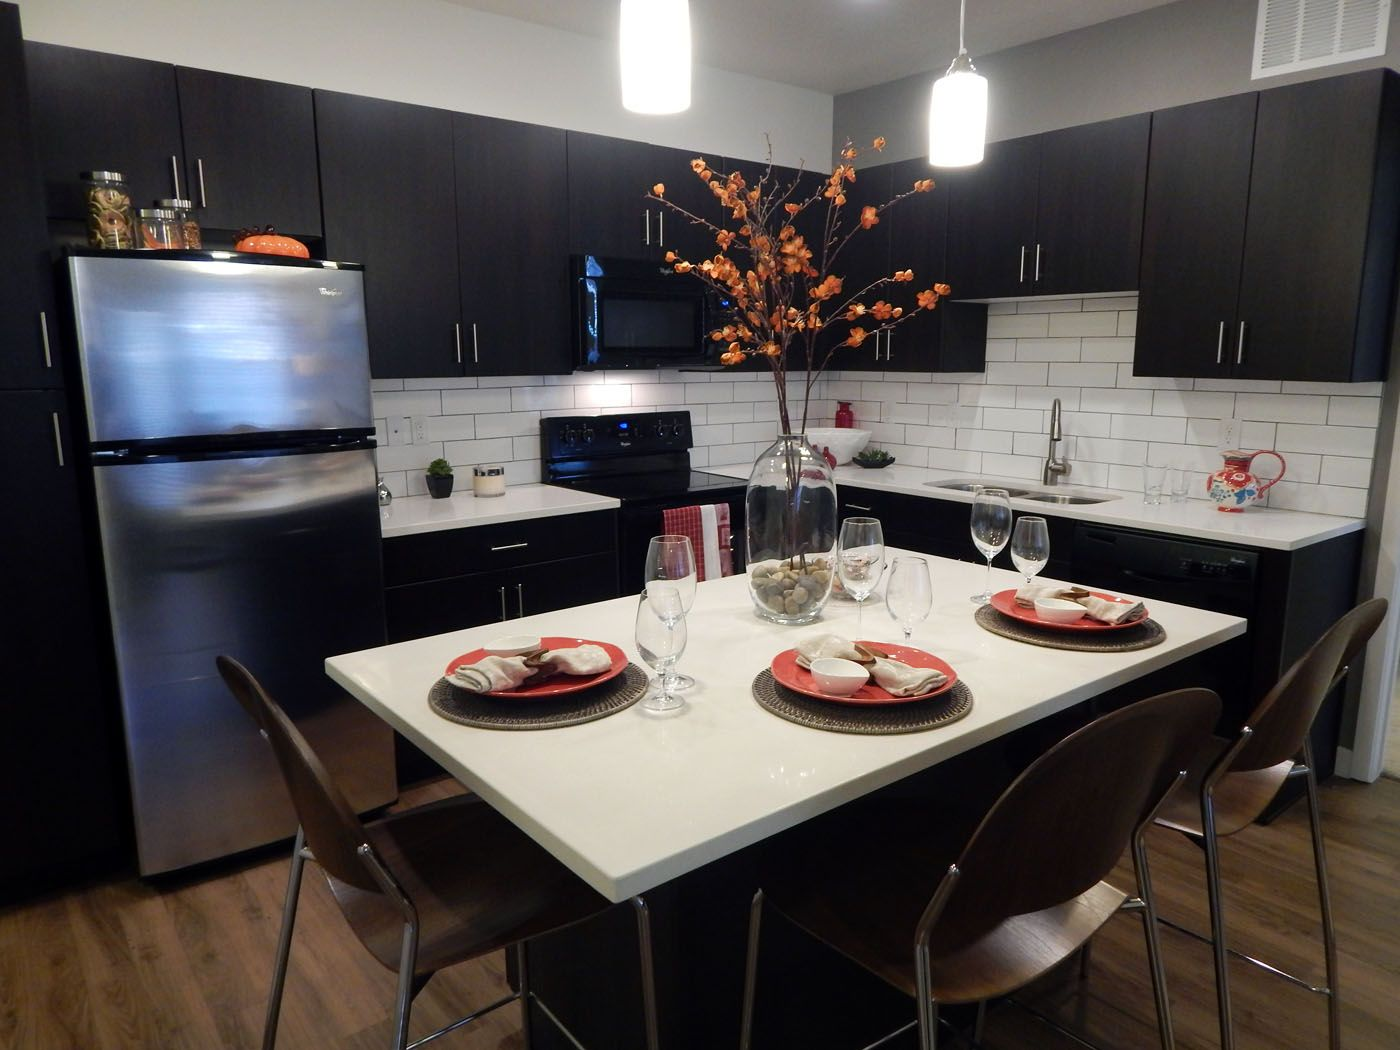 Check out these beautiful modern homes at The Lofts at 7800